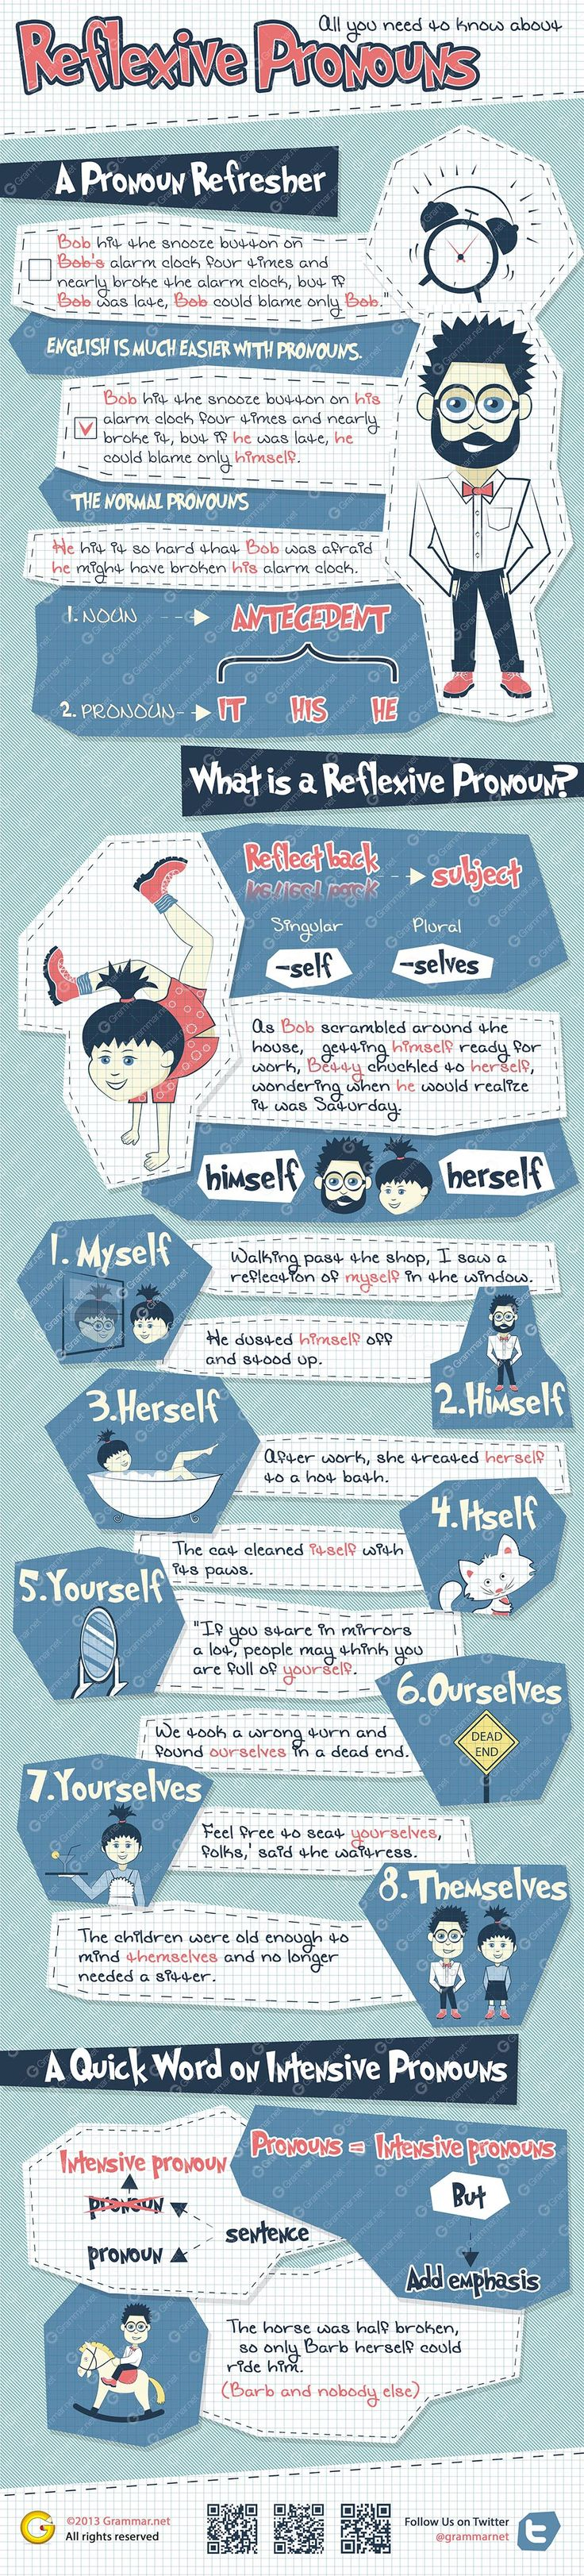 All you need to know about reflexive pronouns #Infographic  Todo lo que necesitas saber sobre pronombres reflexivos #Infografía  by @Grammarnet